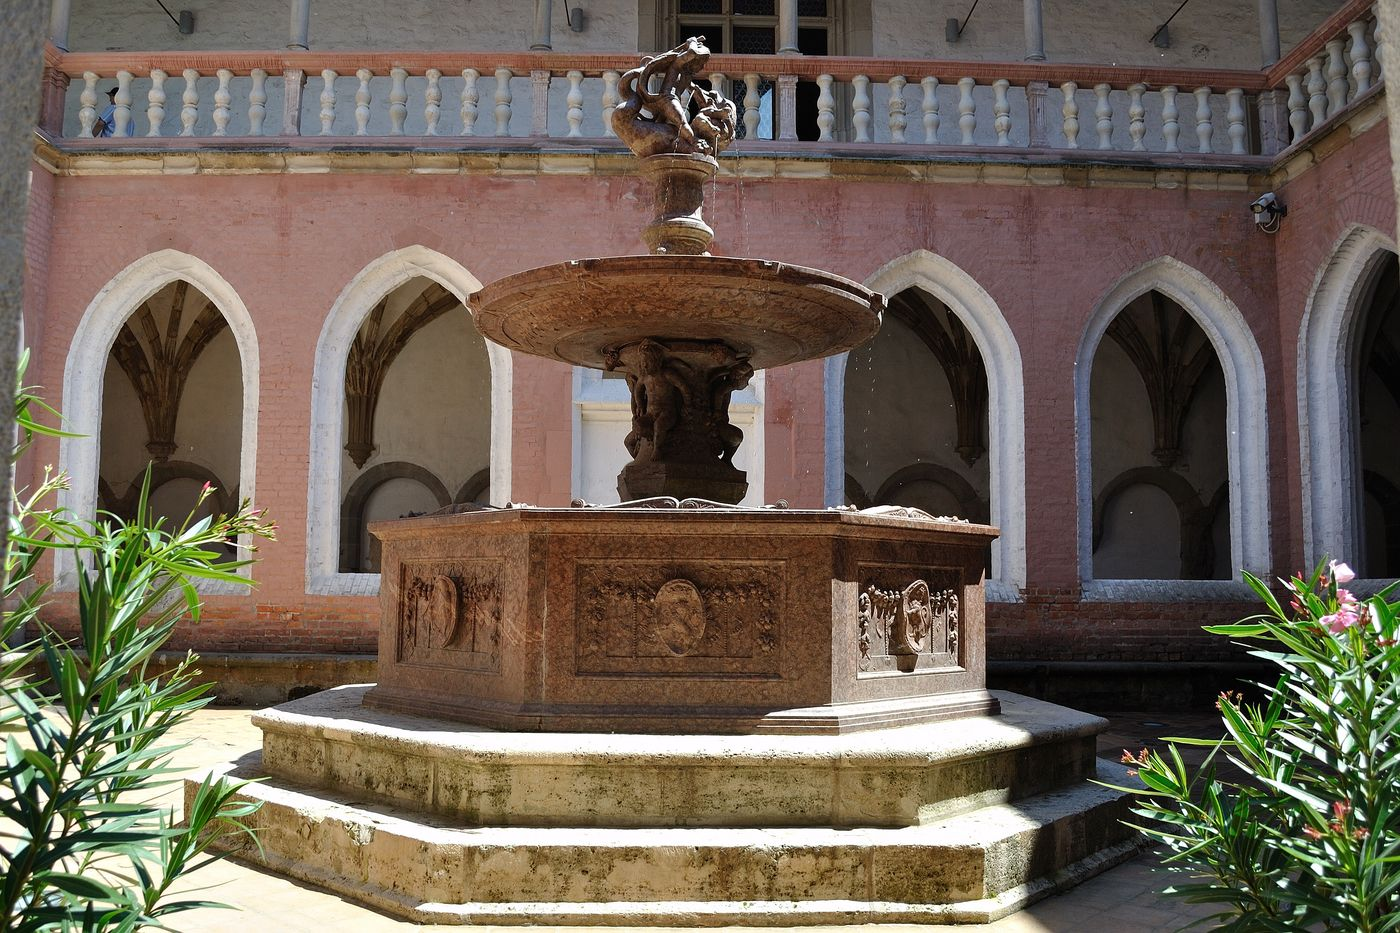 Fountain of Hercules